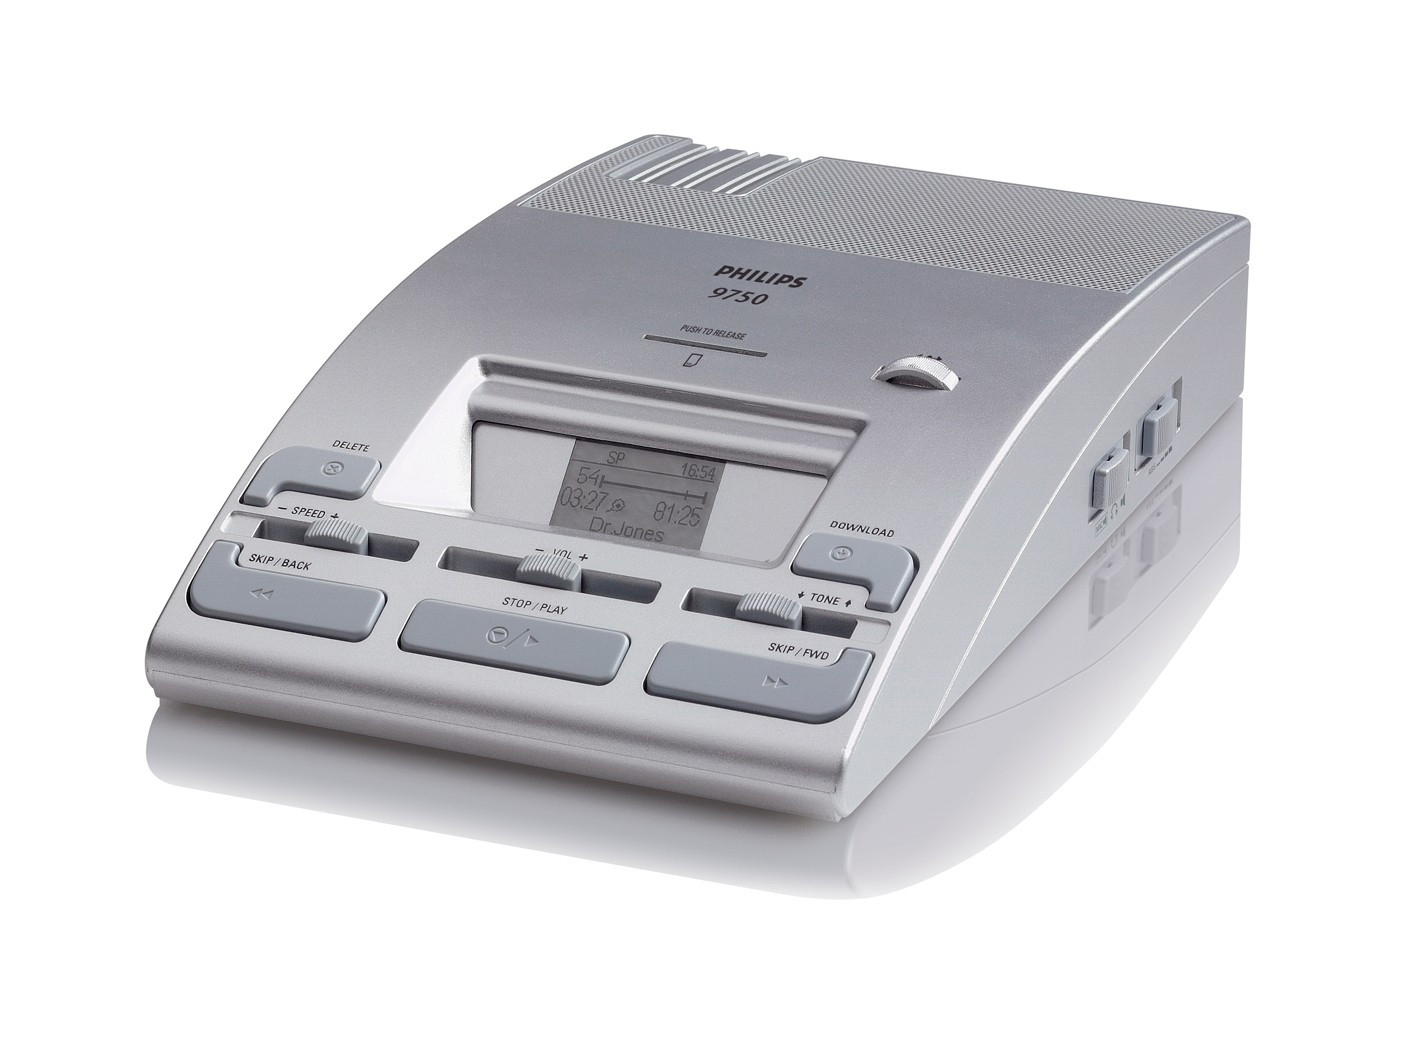 Philips DDT9750 digital desktop